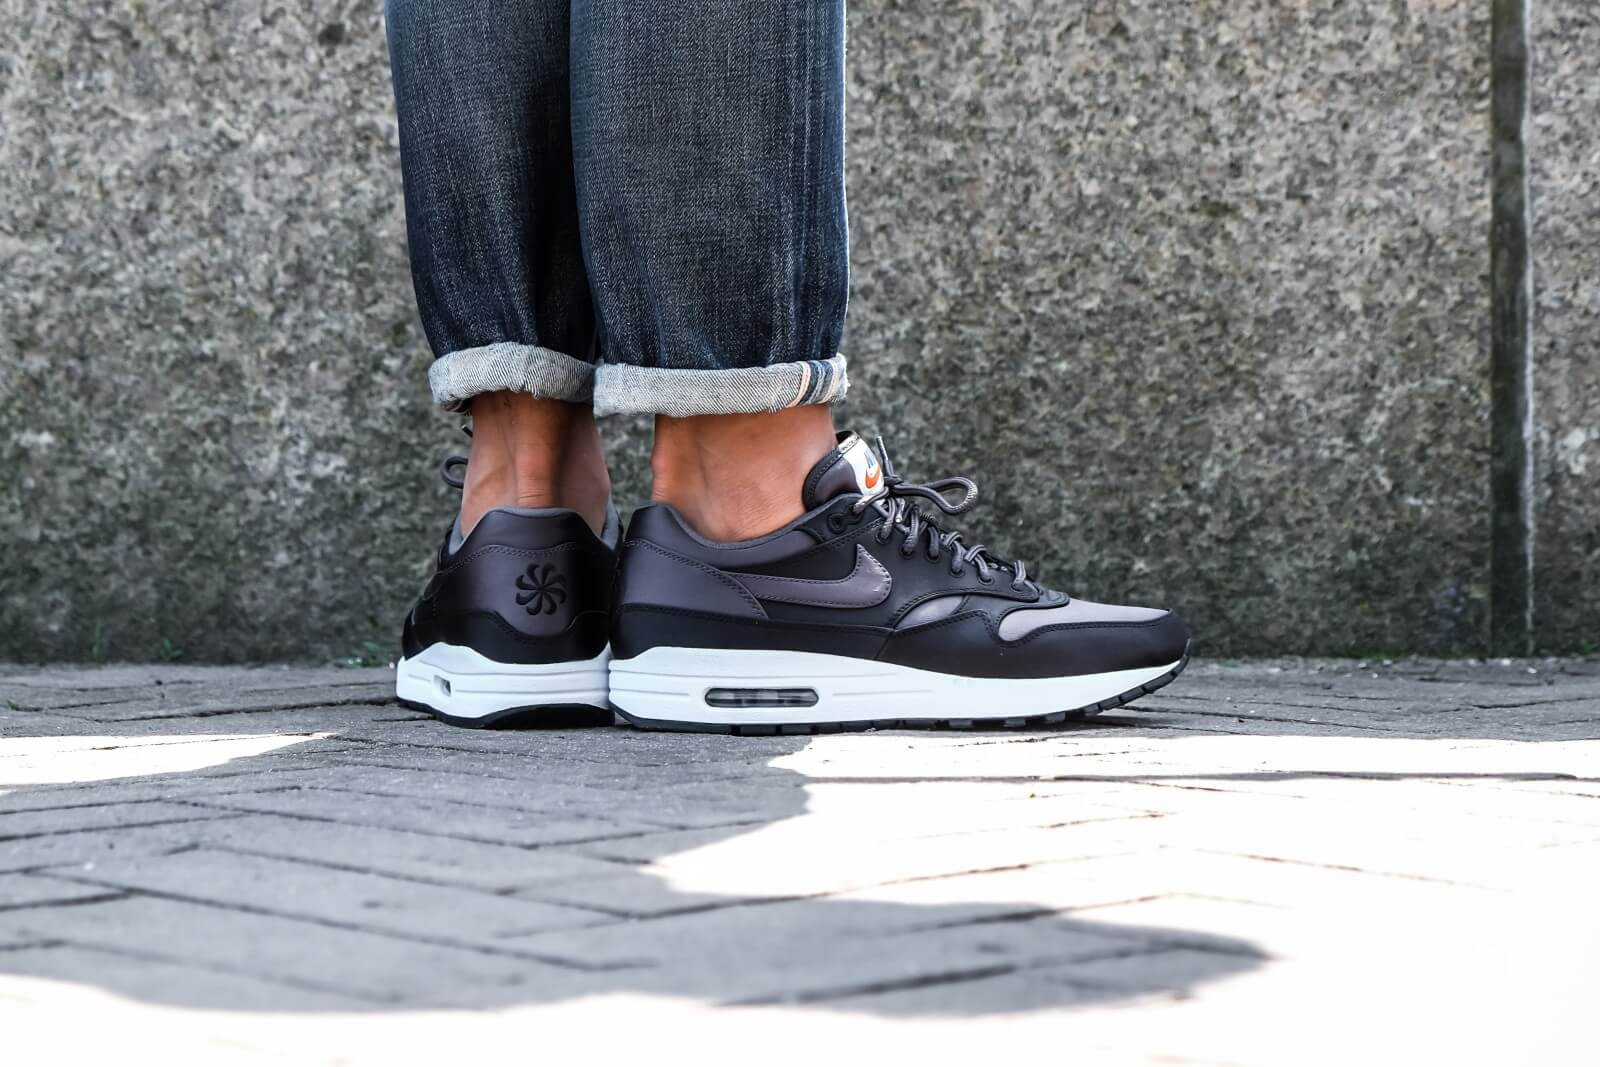 Nike Air Max 1 SE BlackAnthracite White AO1021 001